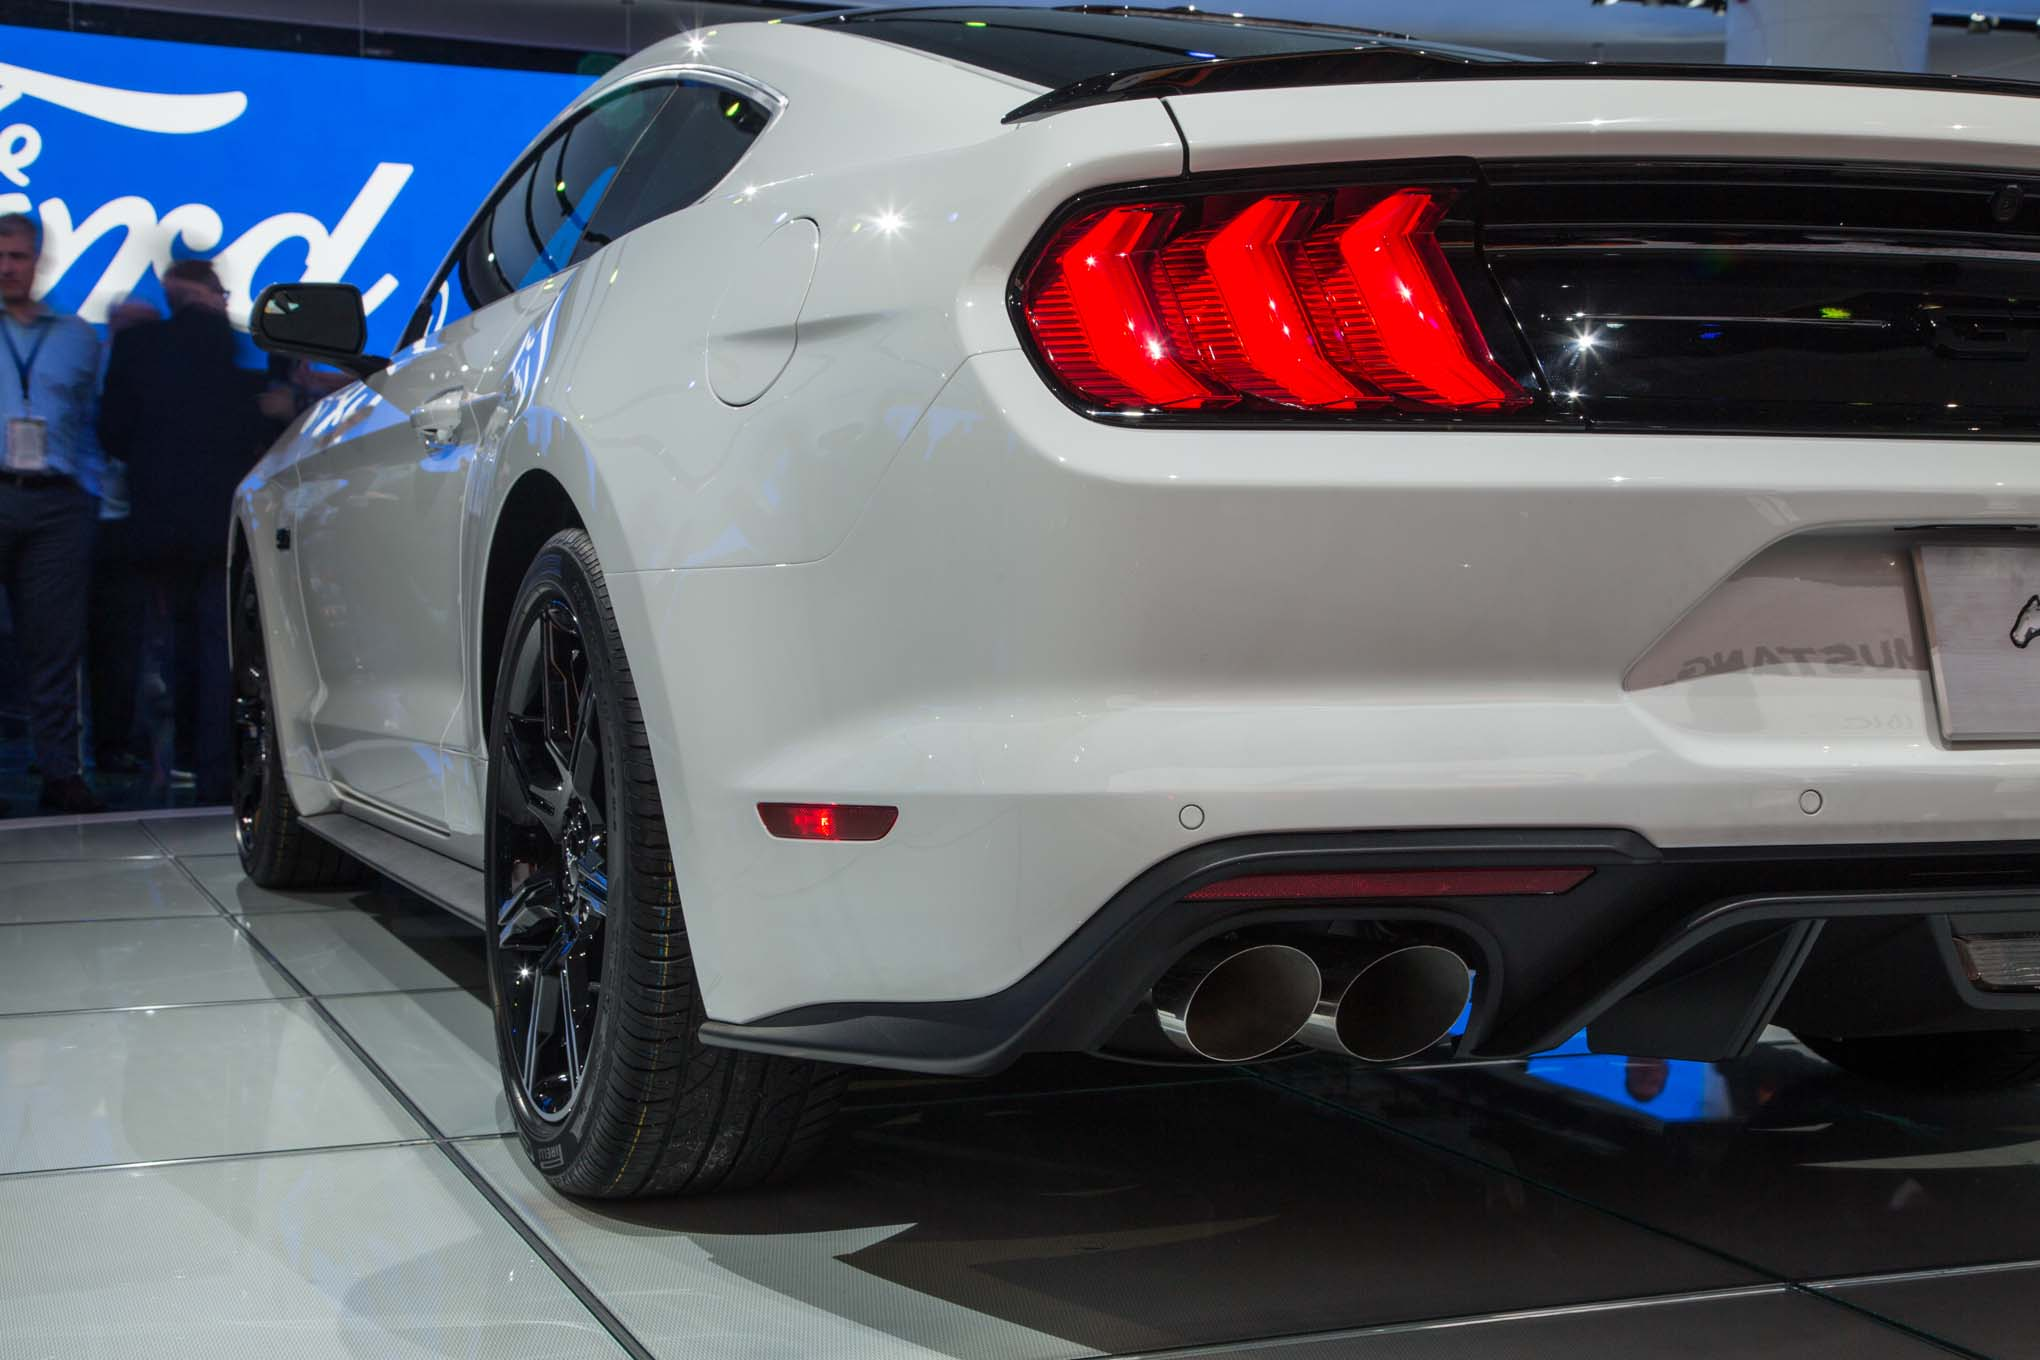 2018 Ford Mustang GT rear quarter panel